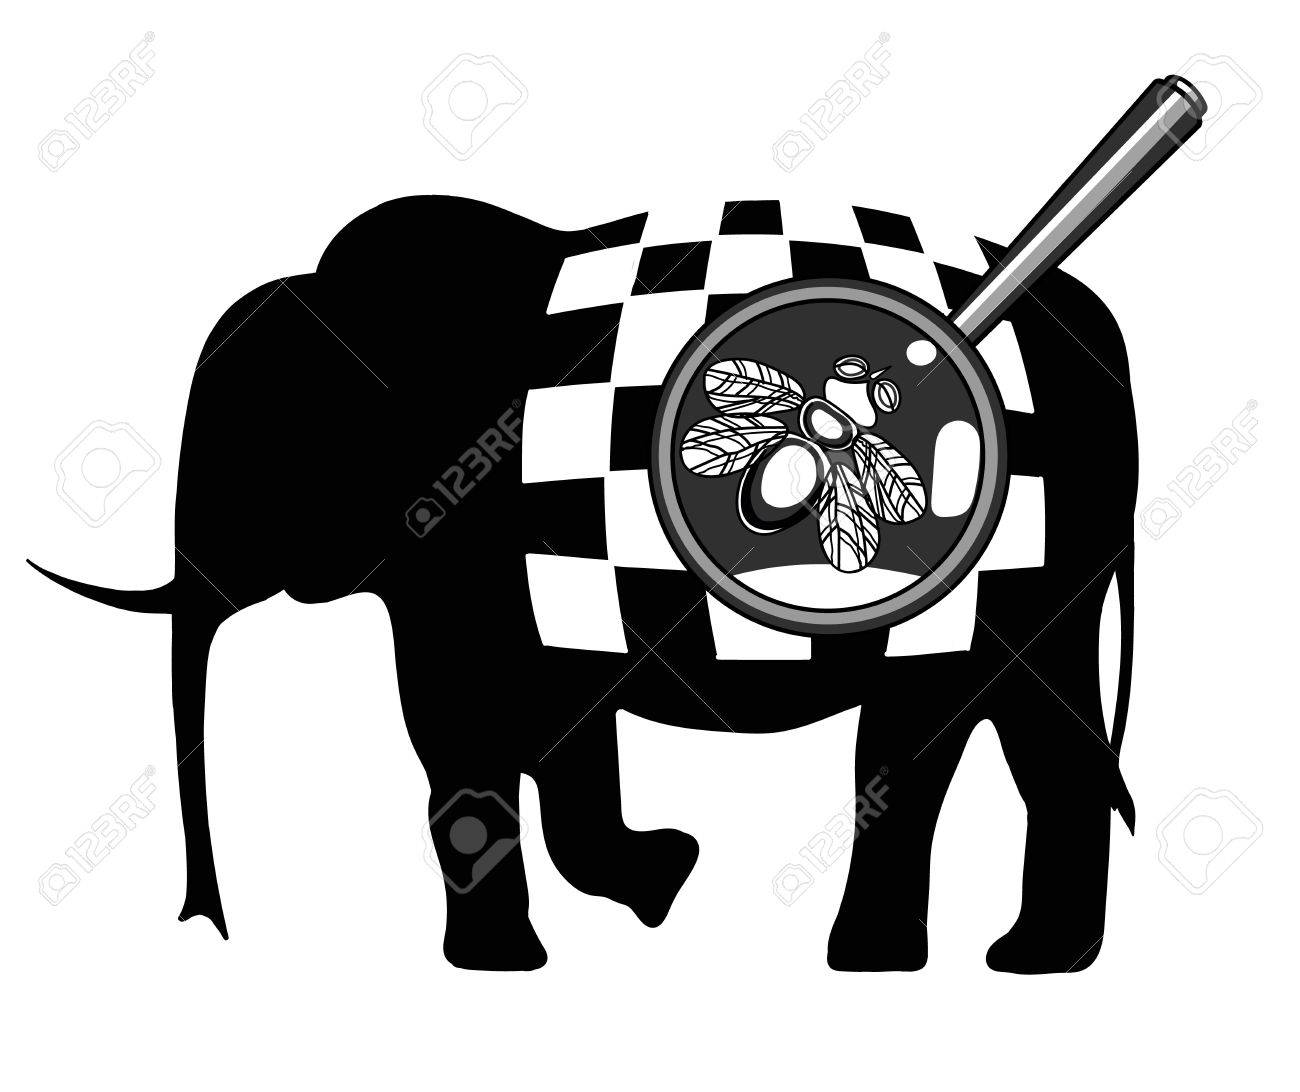 https://previews.123rf.com/images/dalinas/dalinas1602/dalinas160200031/53405732-black-and-white-illustration-with-the-image-of-a-fly-on-an-elephant-with-a-checkerboard-pattern-.jpg